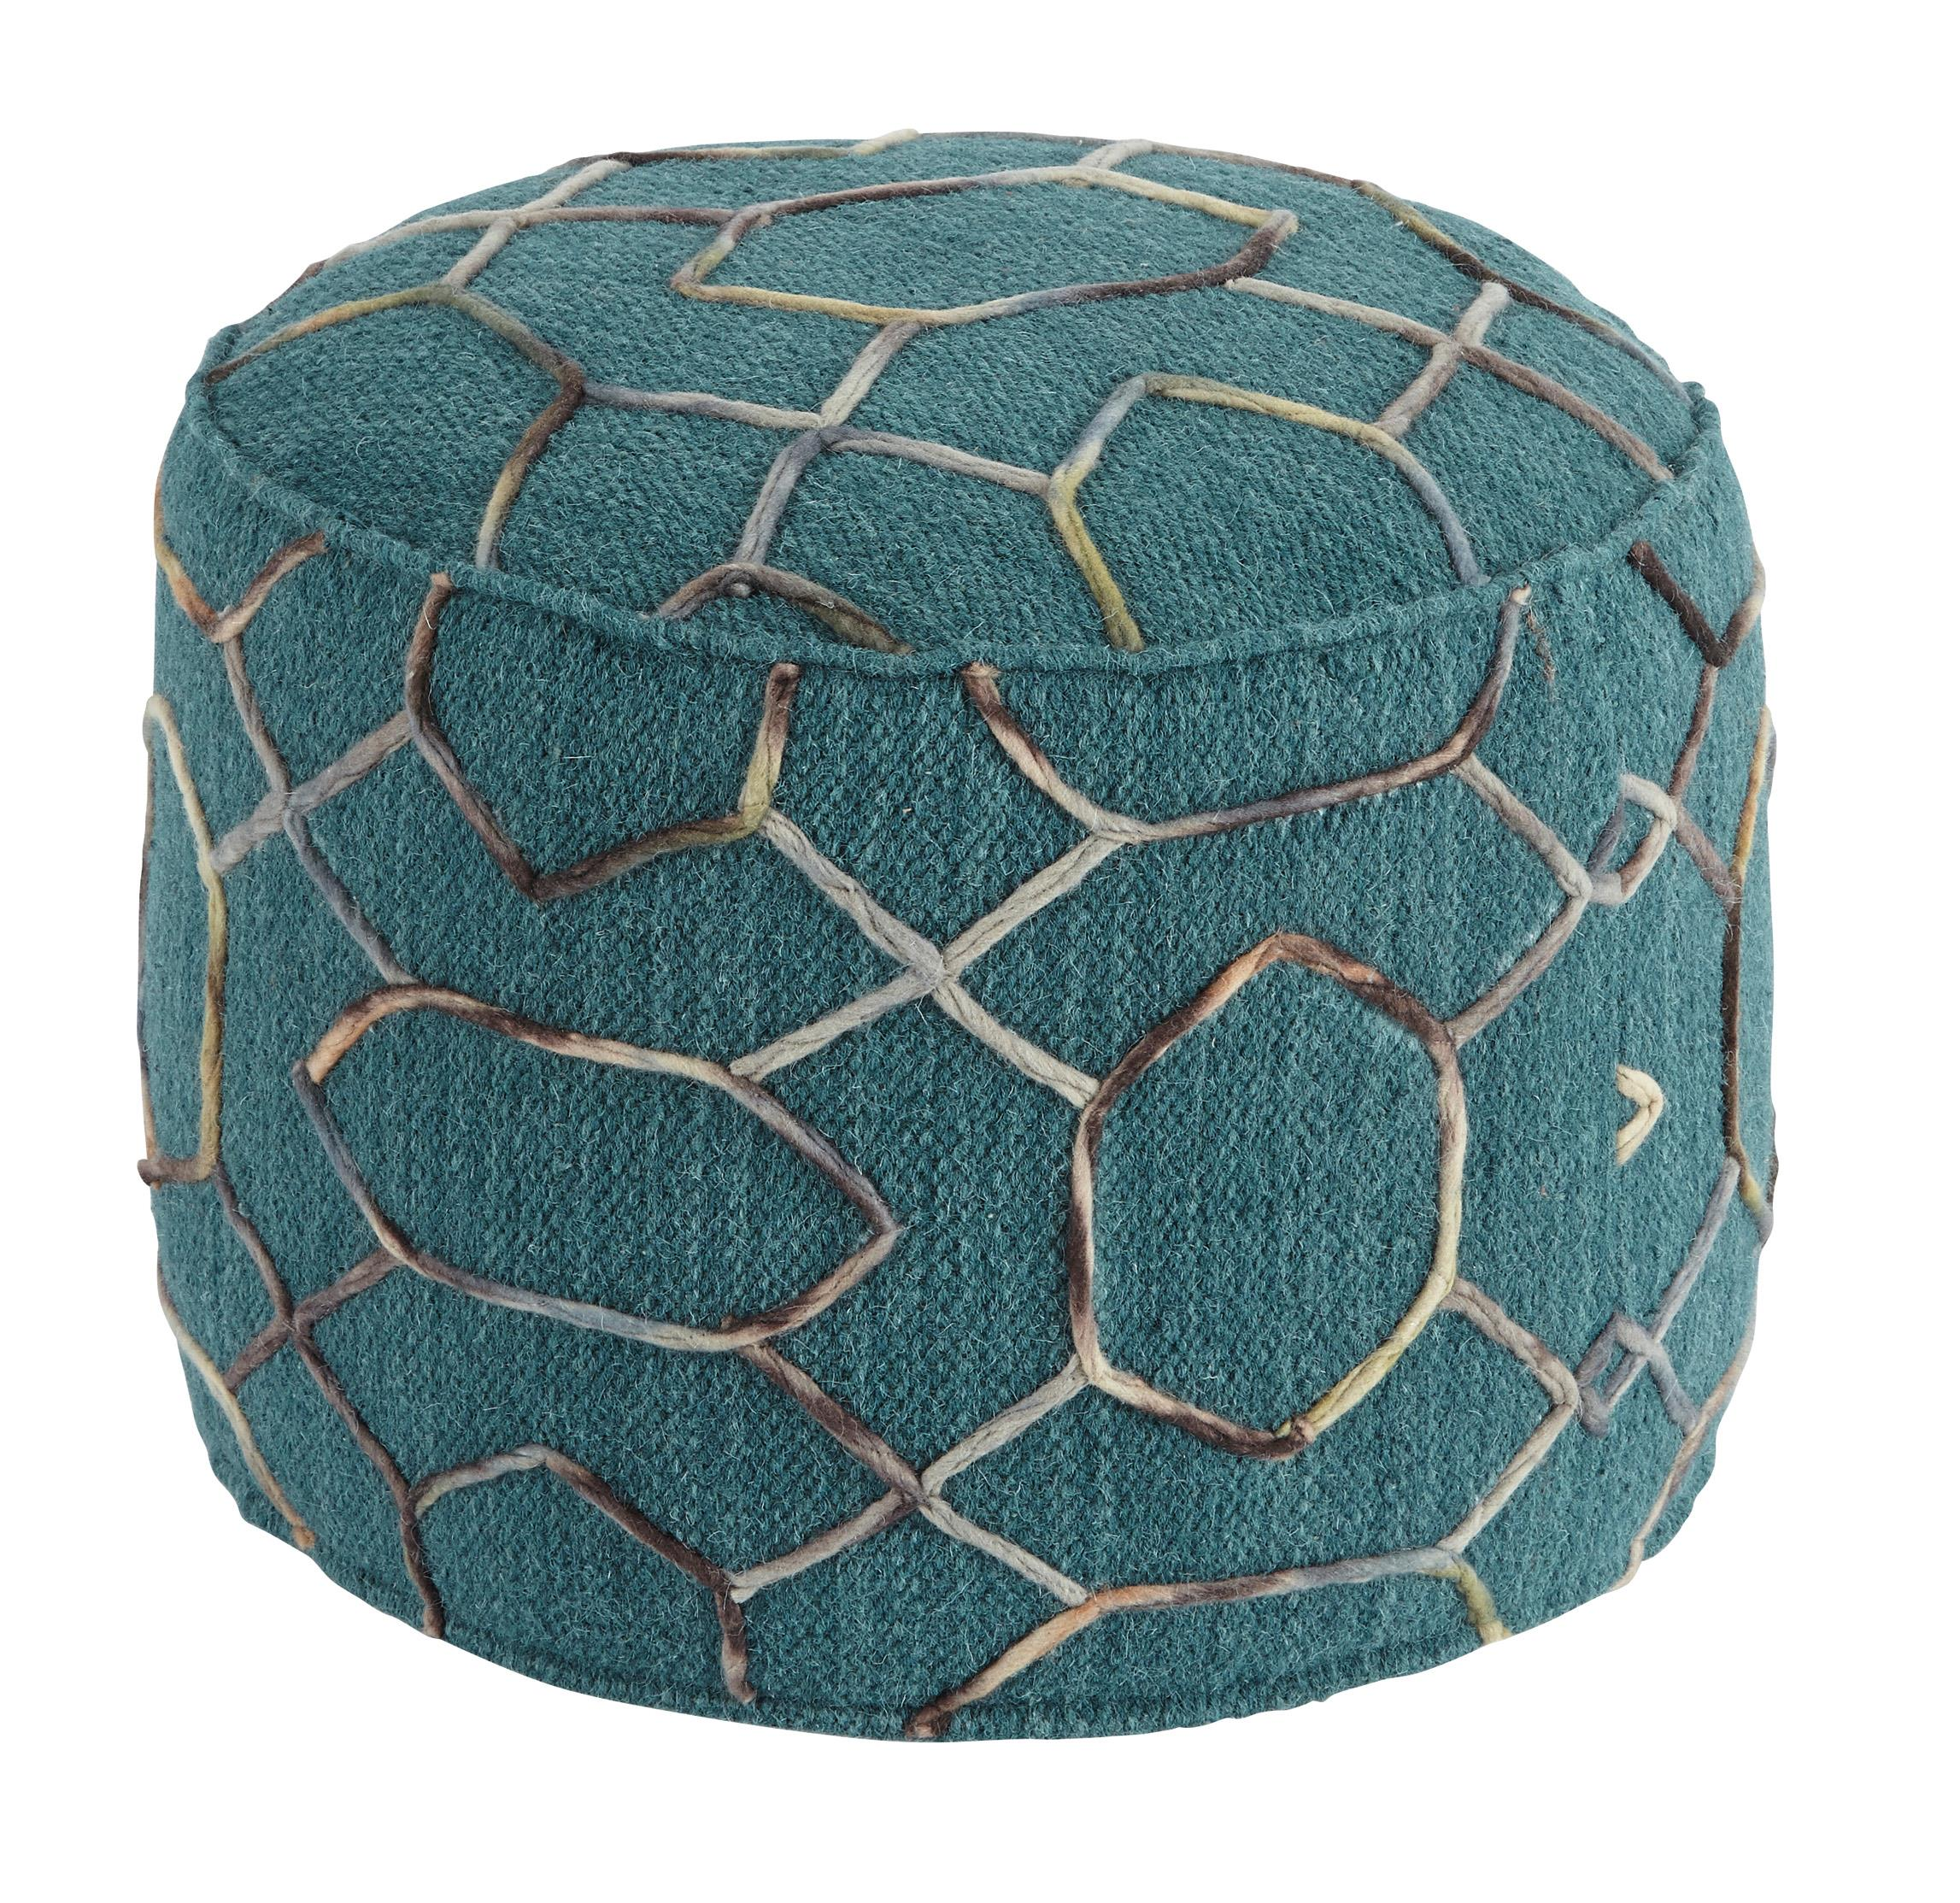 Signature Design by Ashley Poufs Overdyed - Dark Green Pouf - Item Number: A1000434